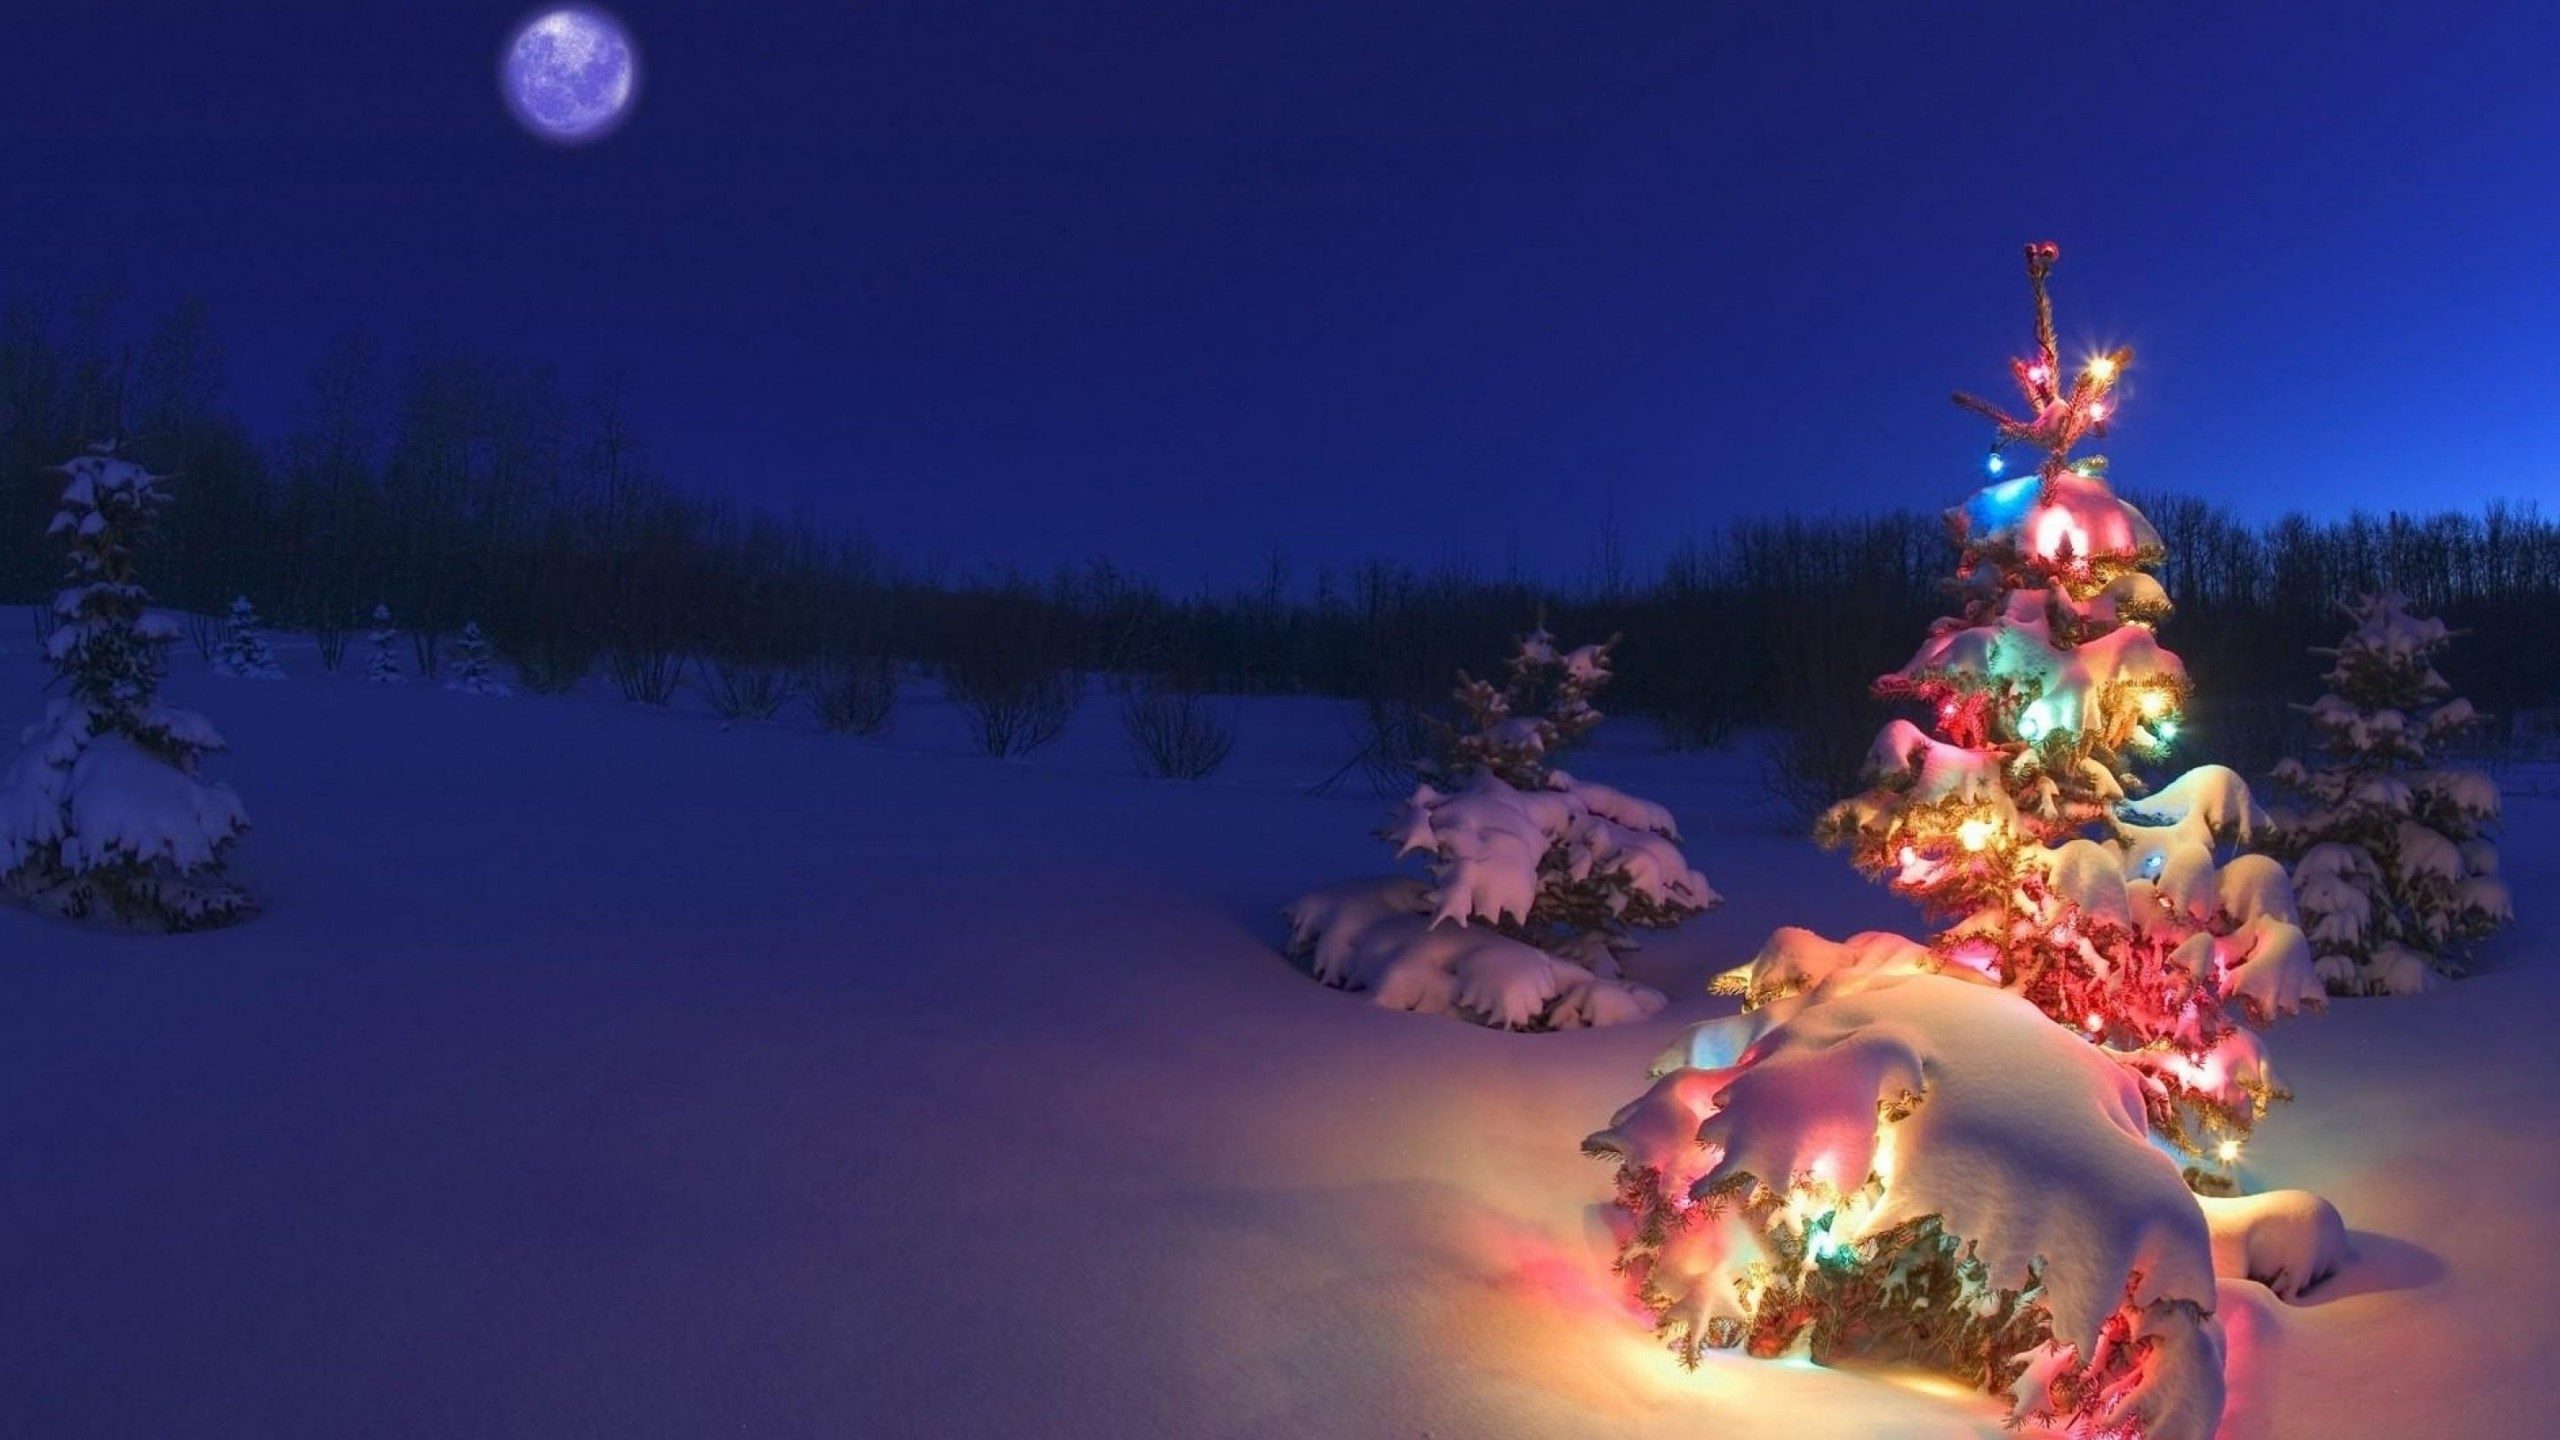 Christmas Night Moon Wallpaper for Social Media YouTube Channel Art